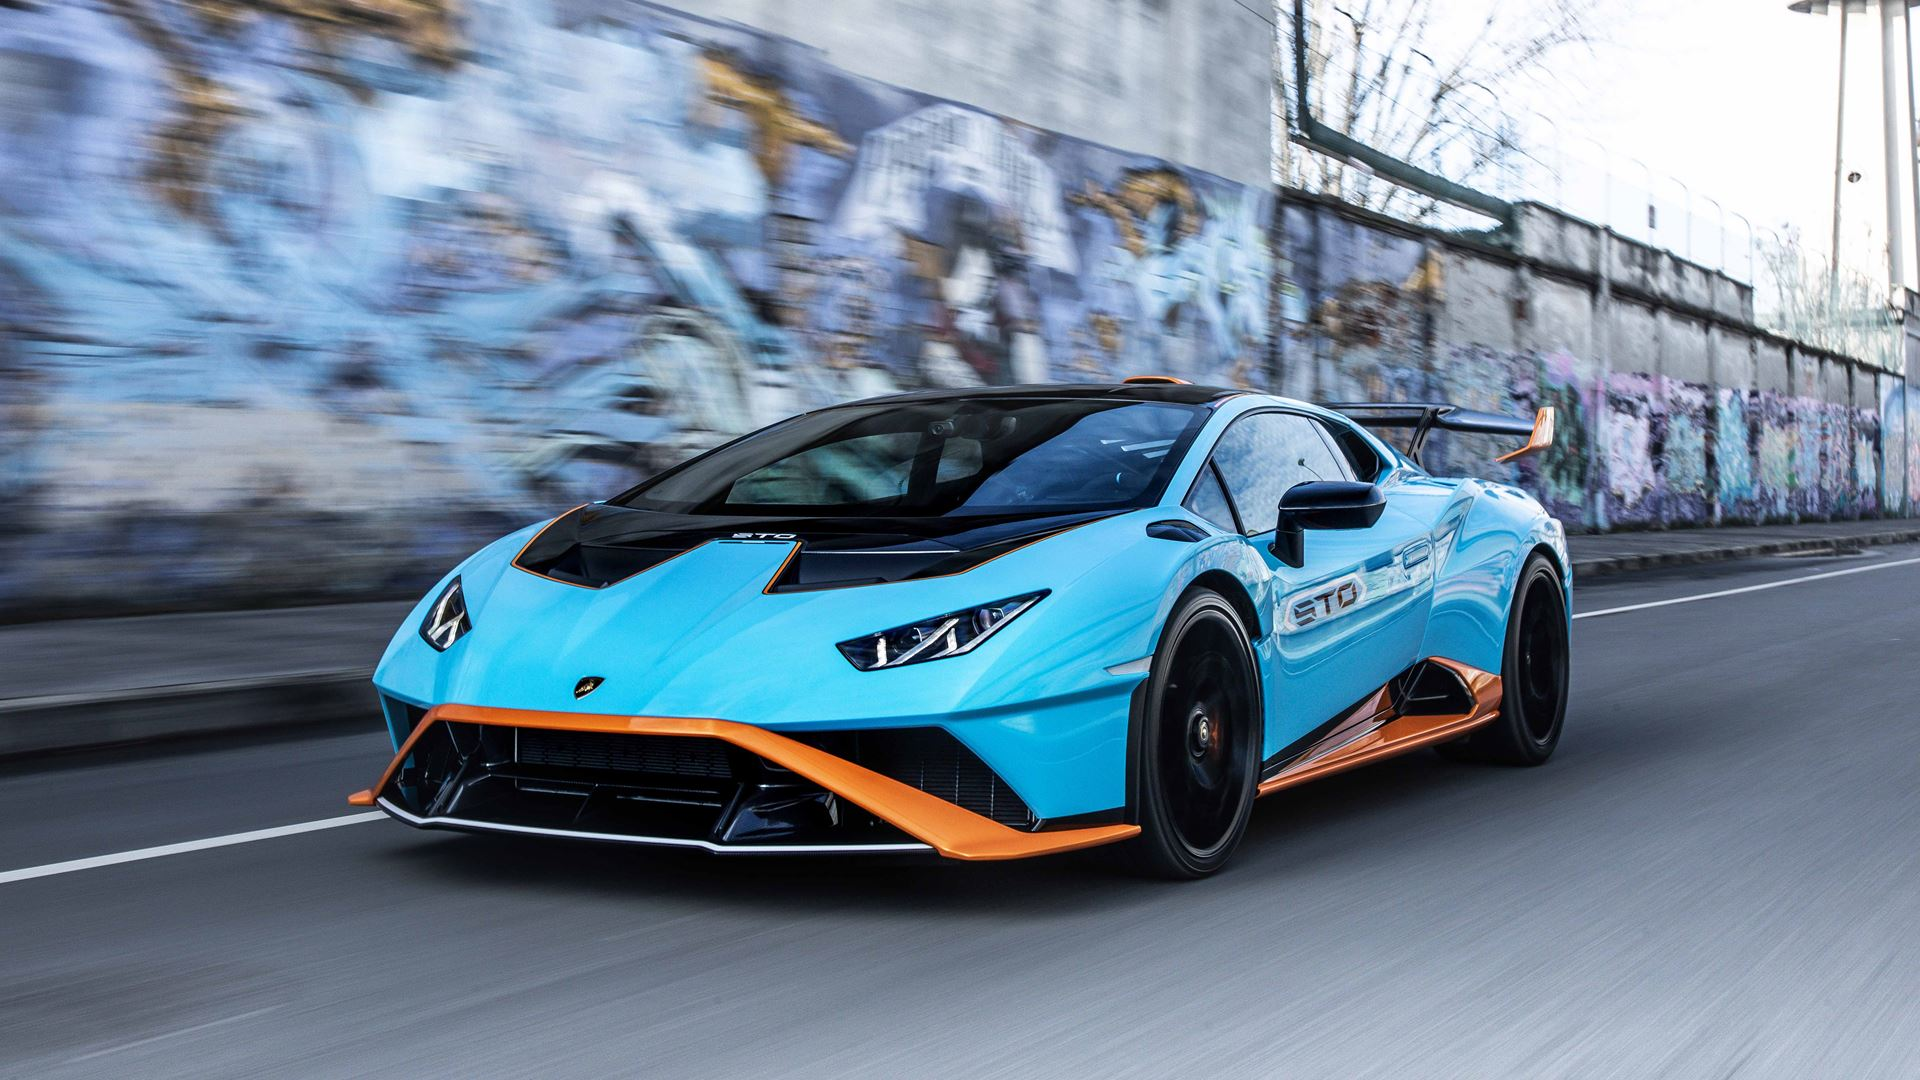 Lamborghini sales: the best half-year ever. Orders taken for the next ten months - Image 2